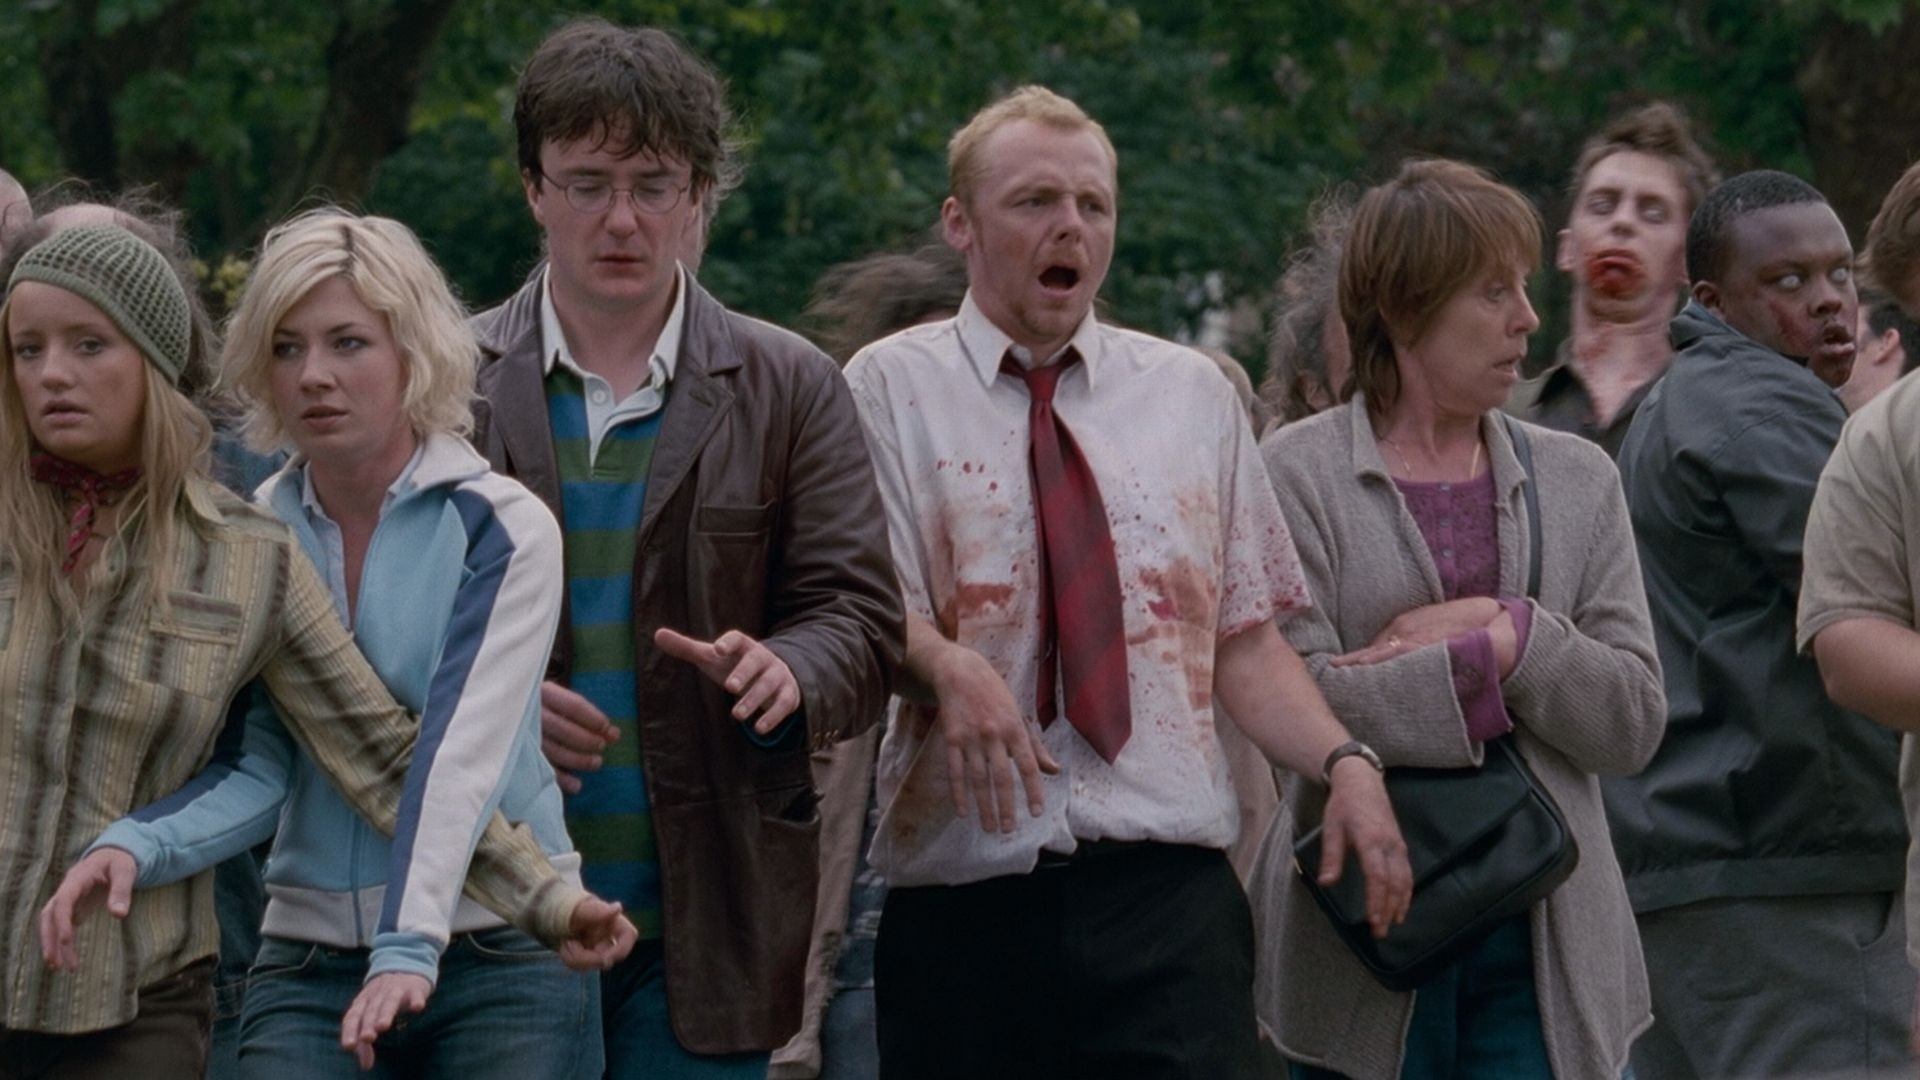 shaun-of-the-dead-film_84681-1920x1080.j